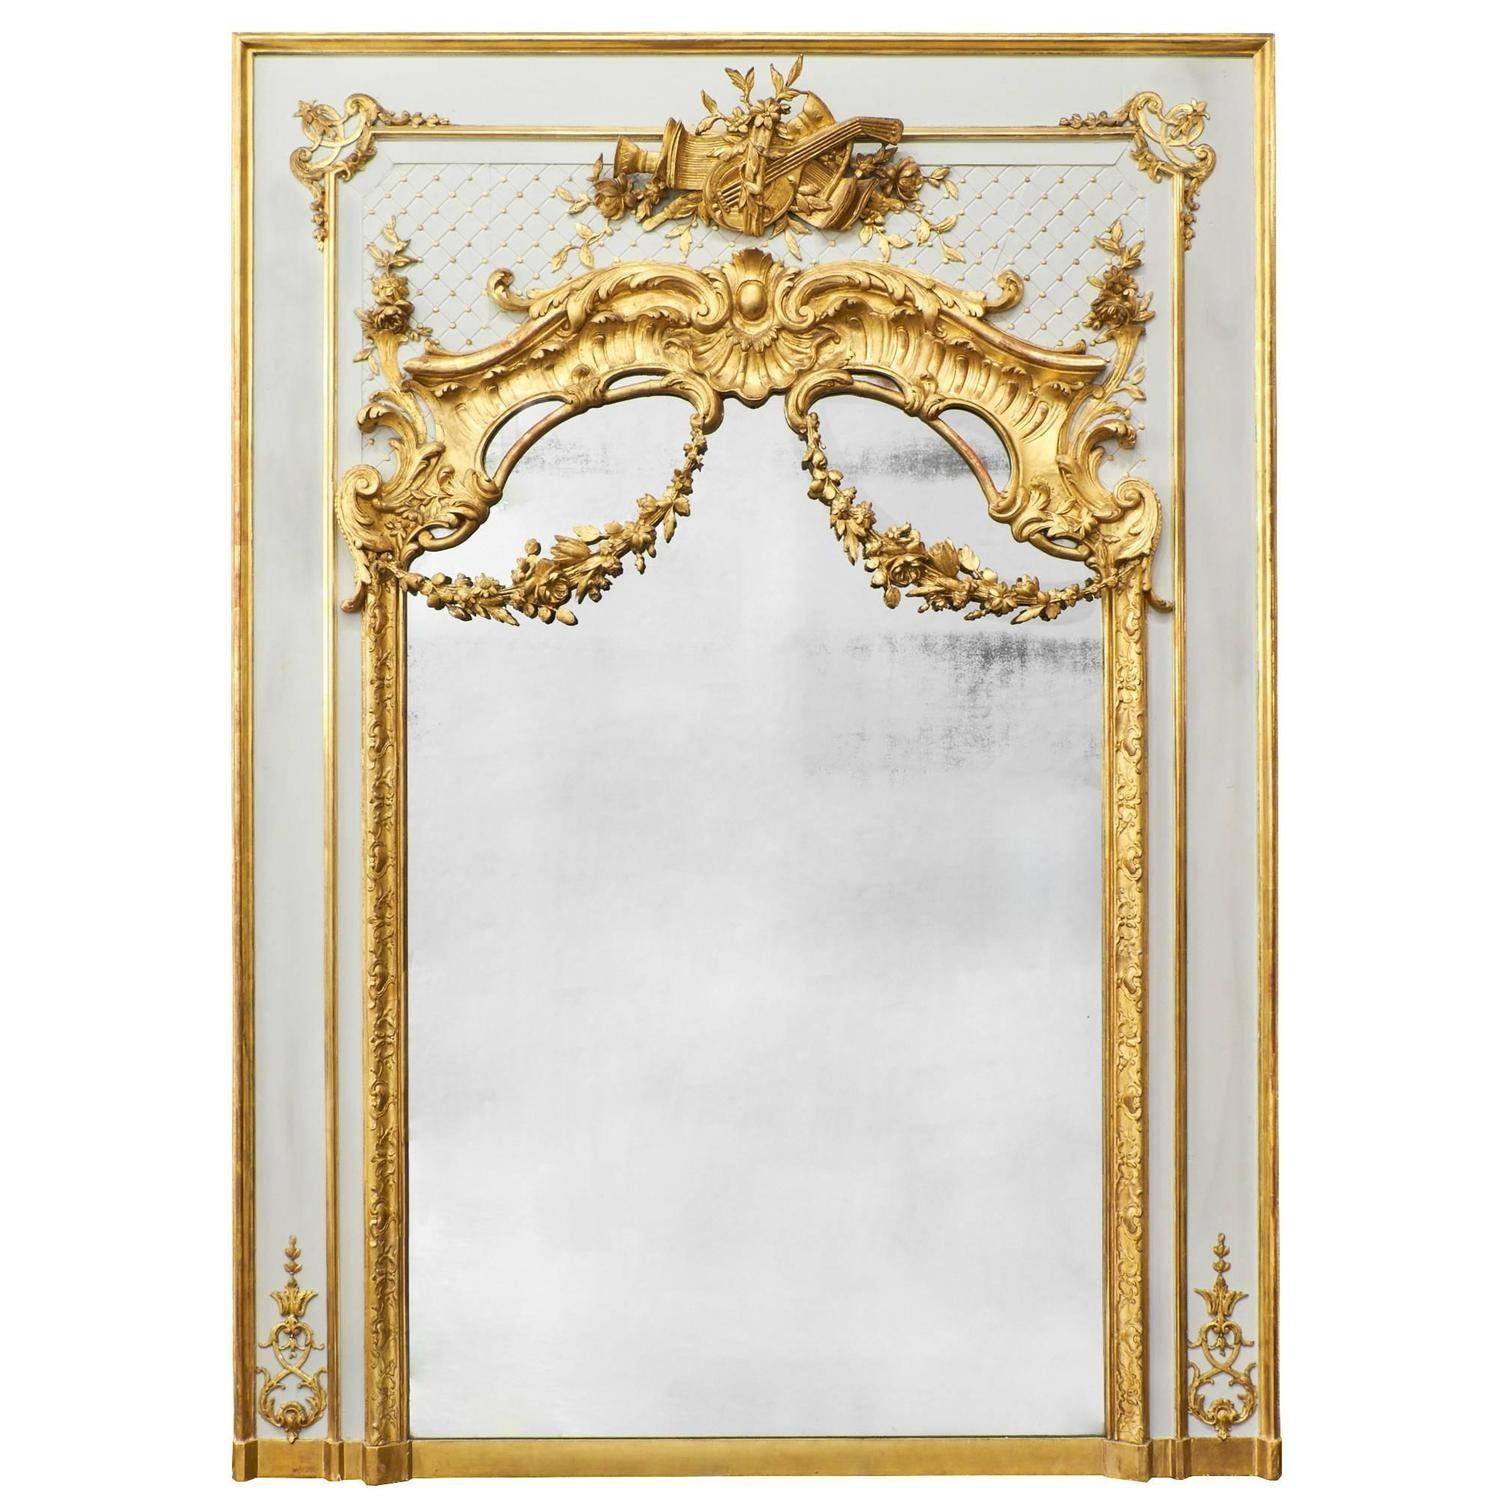 Antique French, Louis Xvi Gold Leaf Trumeau For Sale At 1Stdibs inside Gold Arch Mirrors (Image 4 of 25)